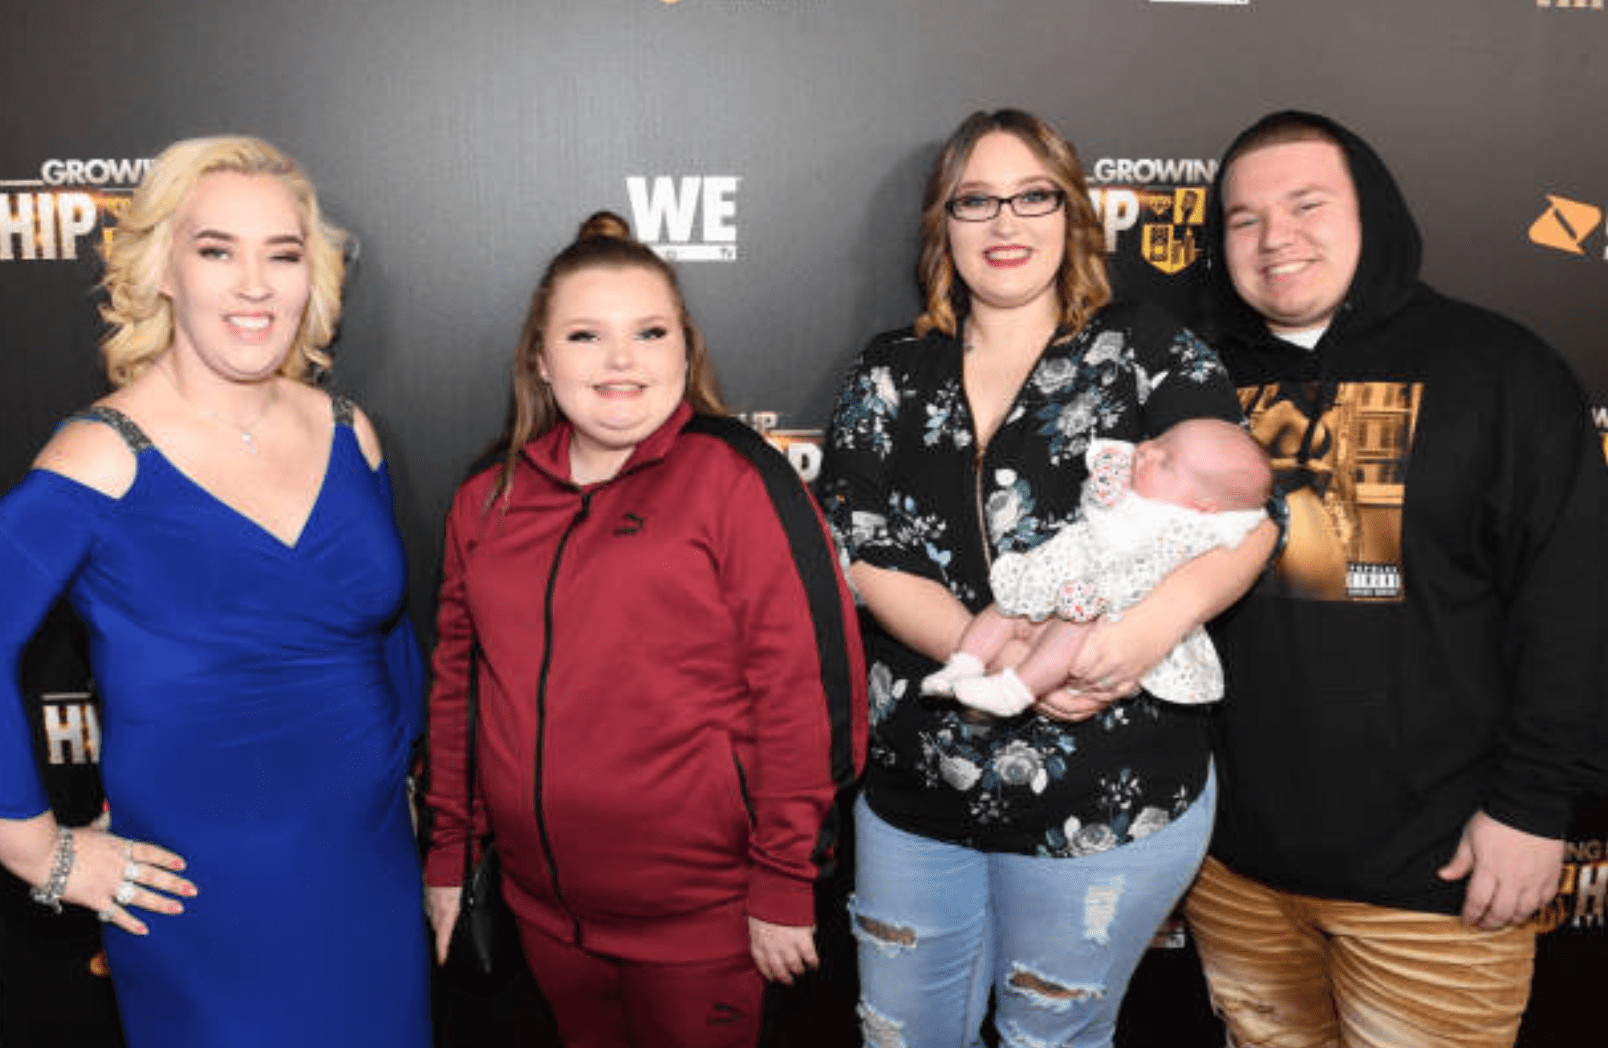 Mama June Shannon, Alana Thompson, Lauryn Shannon and Joshua Efird attend the premiere for 'Growing Up Hip Hop,' Atlanta   Getty Images.